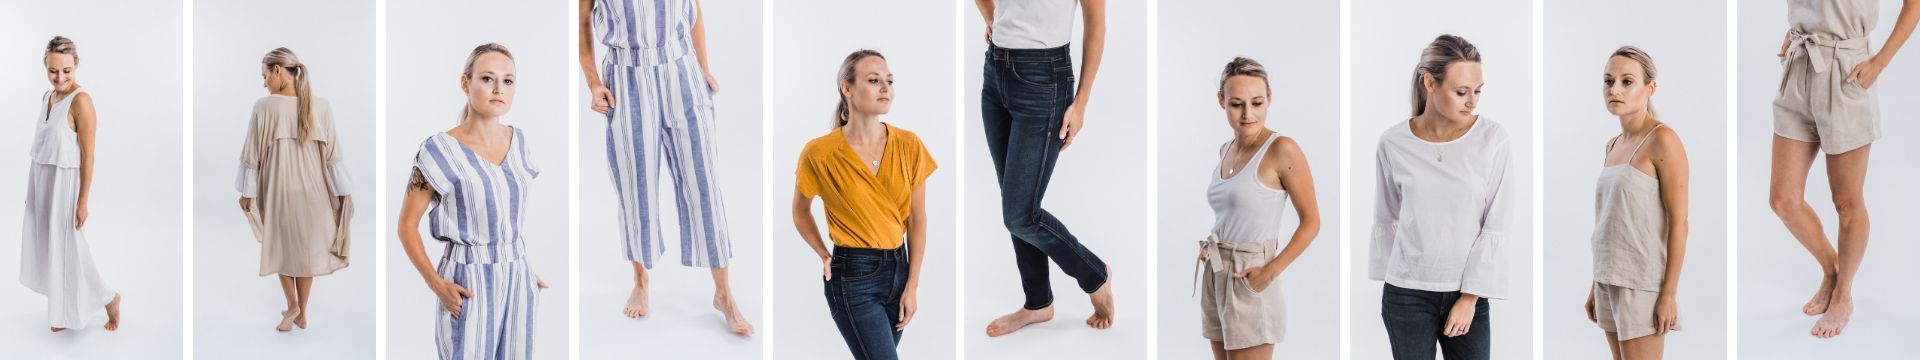 shop eco-friendly pieces from our Destination Capsule wardrobe, the perfect travel capsule for minimalists